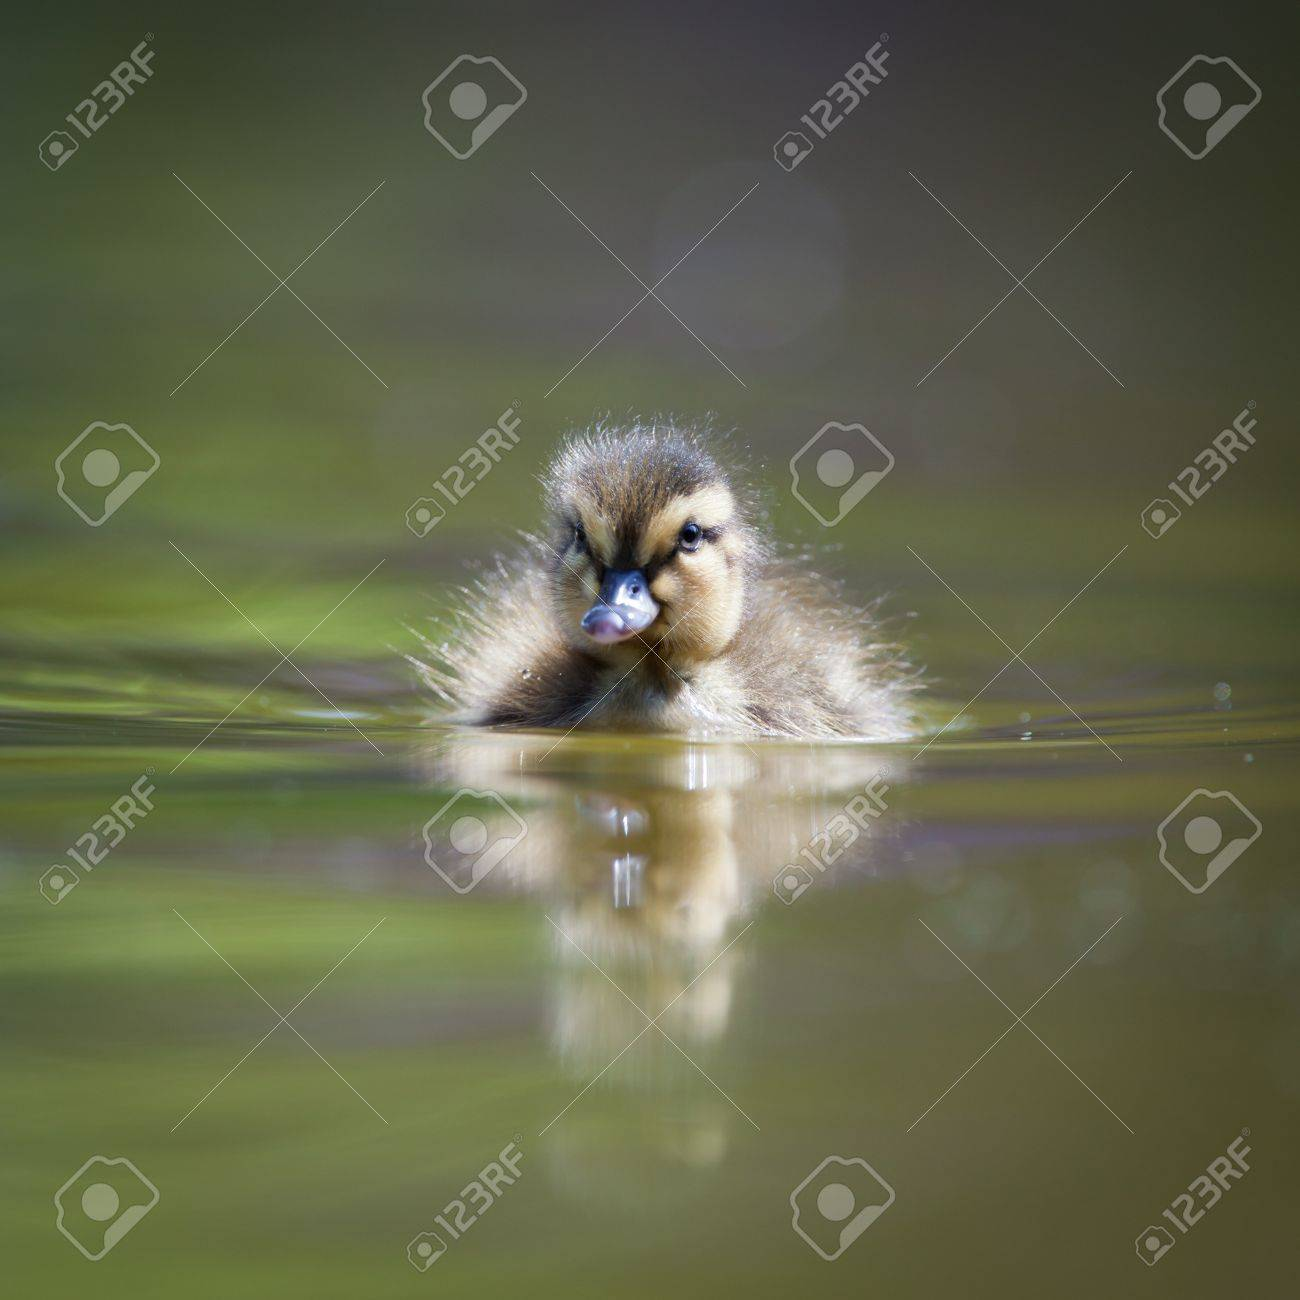 cute little duckling swimming in water Stock Photo - 9696858